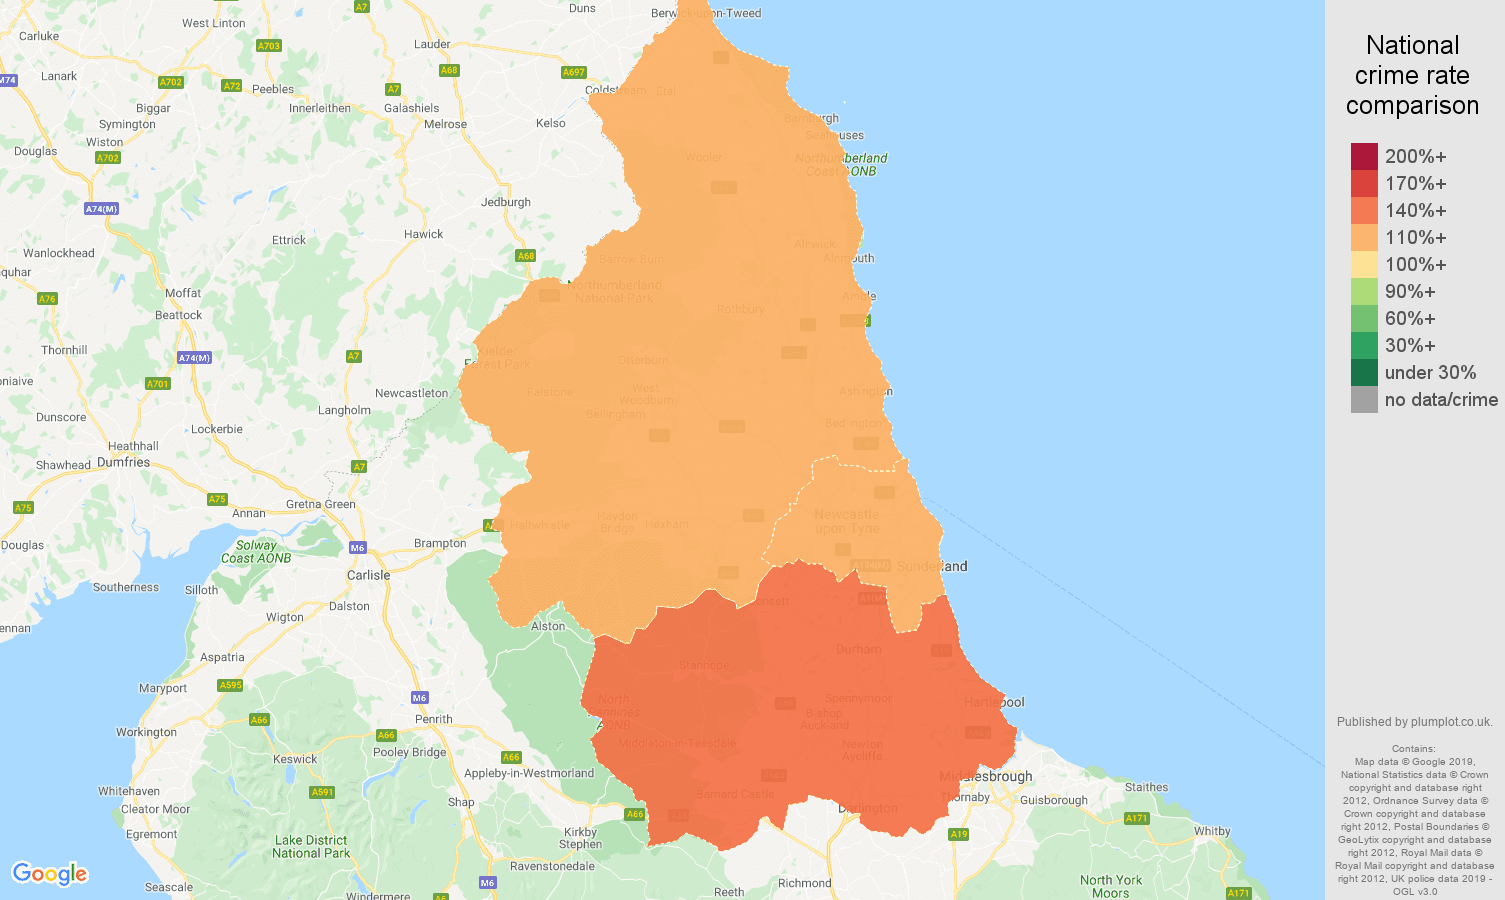 North East other crime rate comparison map